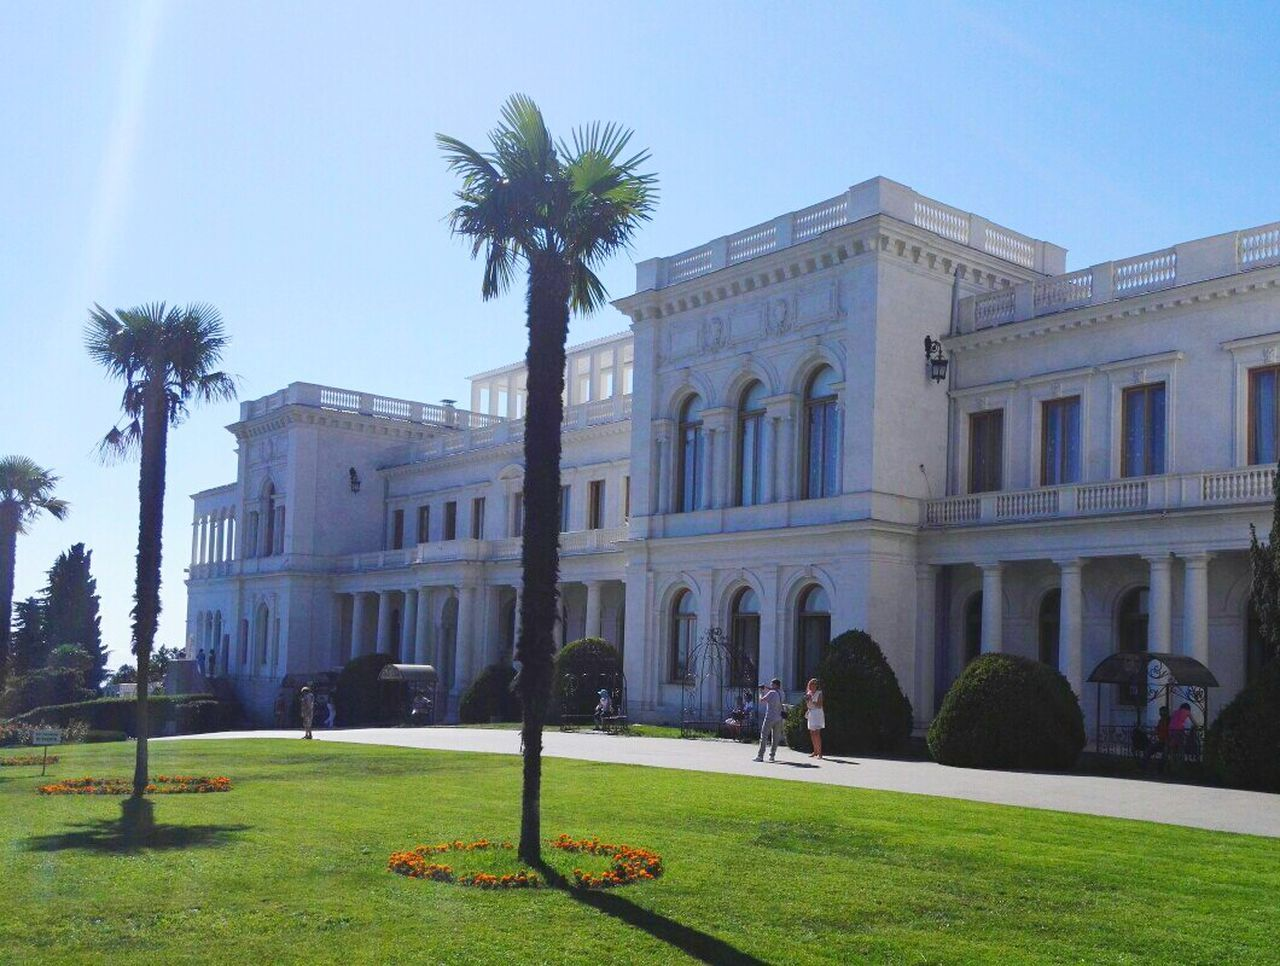 Politics And Government Architecture Government Building Exterior Outdoors No People Day Buaetiful View Buaetiful Nature Palace Garden Palace Palace Of Culture Castle Yalta Palace_collection Crimea дворец история экскурсия Романовы Beauty In Nature архитектура искусство красивый вид парк